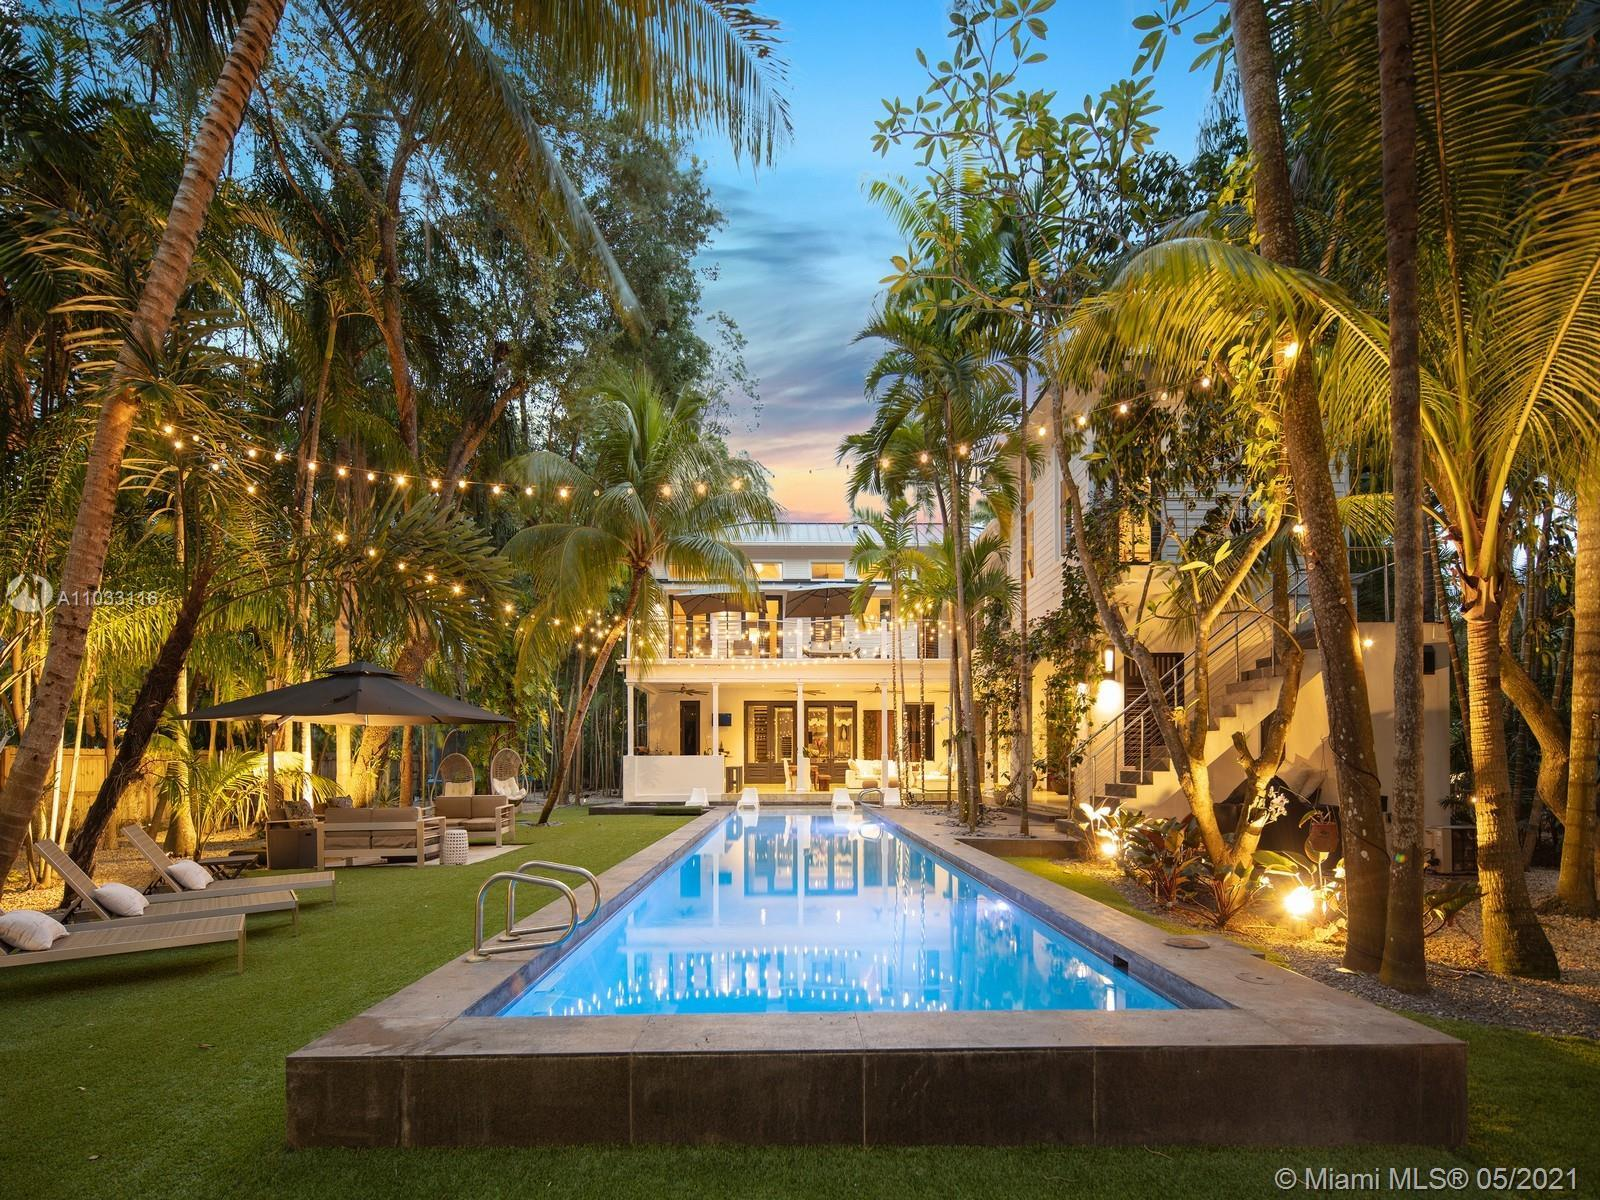 This enchanting tropical paradise is a true hidden gem, located in N Pinecrest & enveloped by exotic